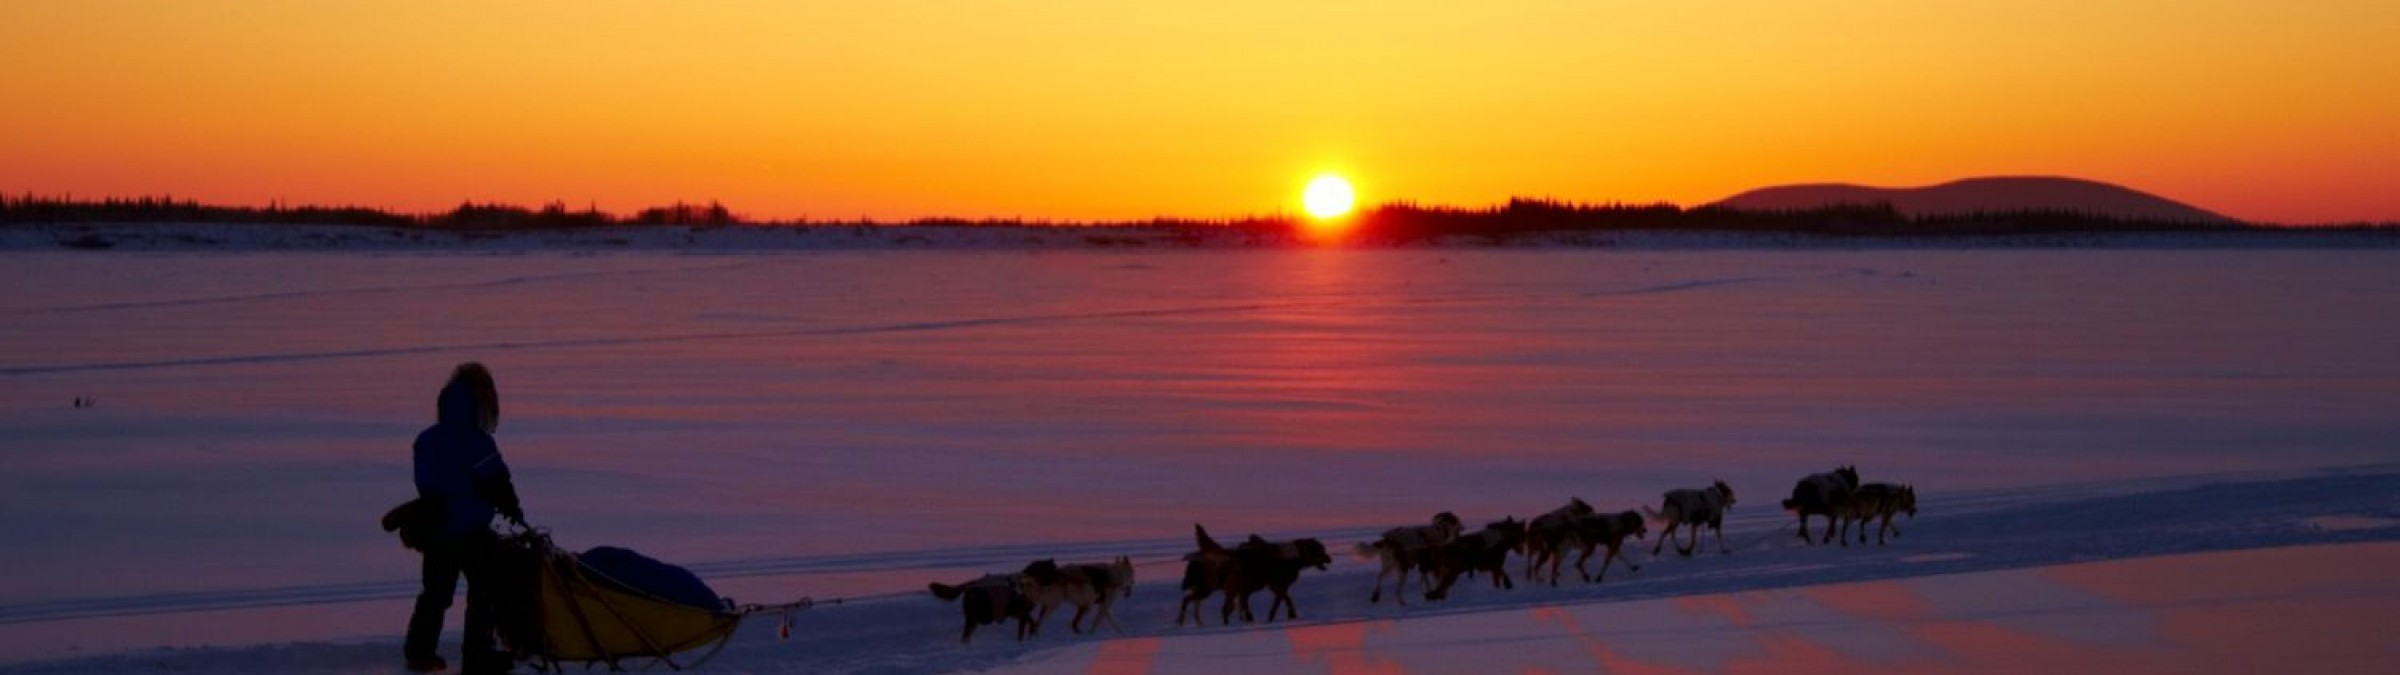 Iditarod Sunset Credit Chris McLennan/State of Alaska